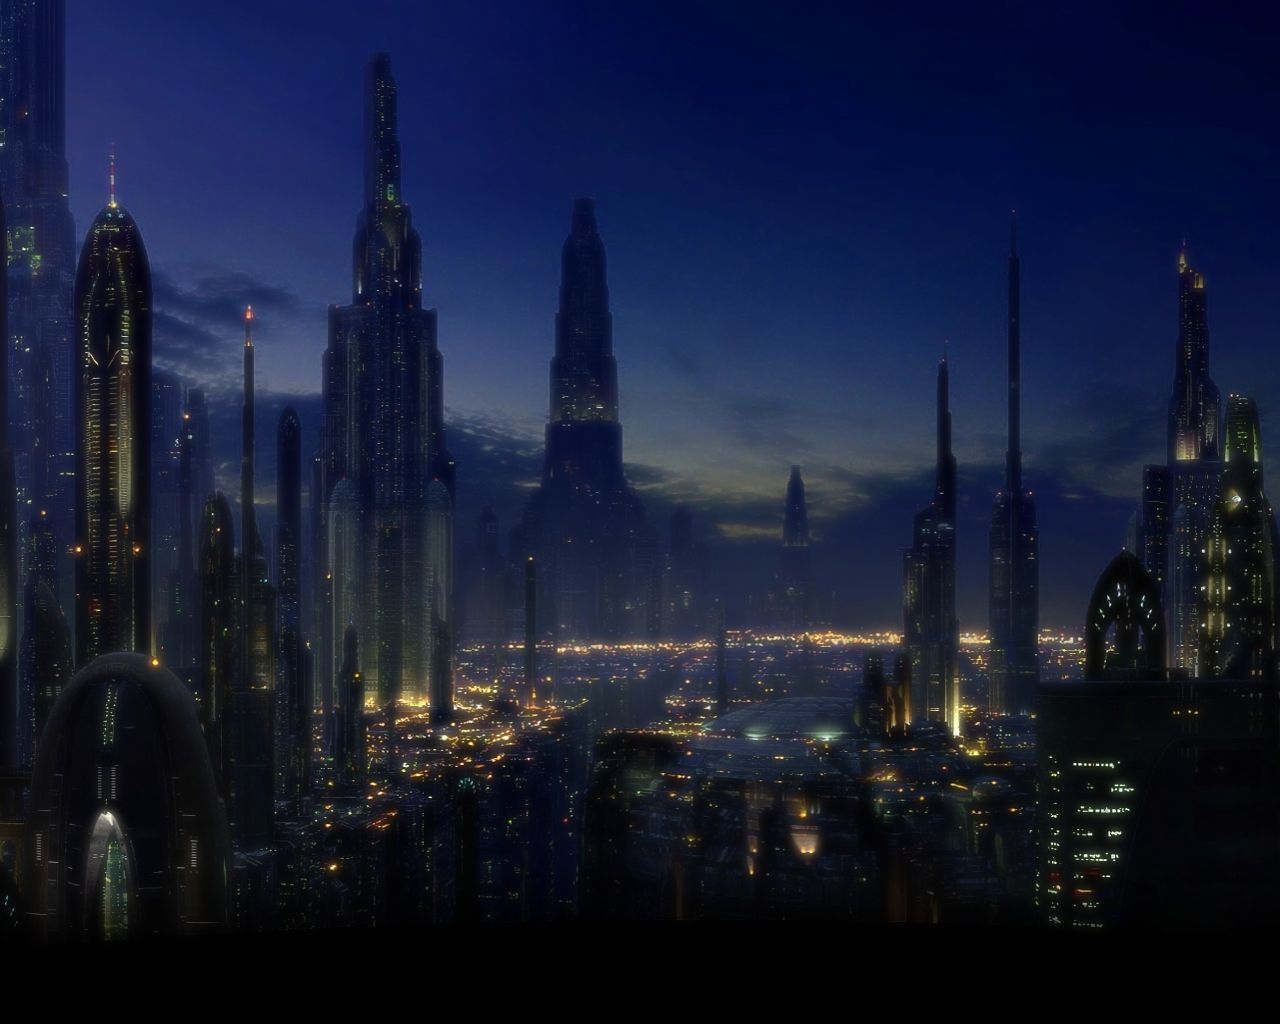 Download 1280x1024 Sci Fi City Wallpaper Background ID79306